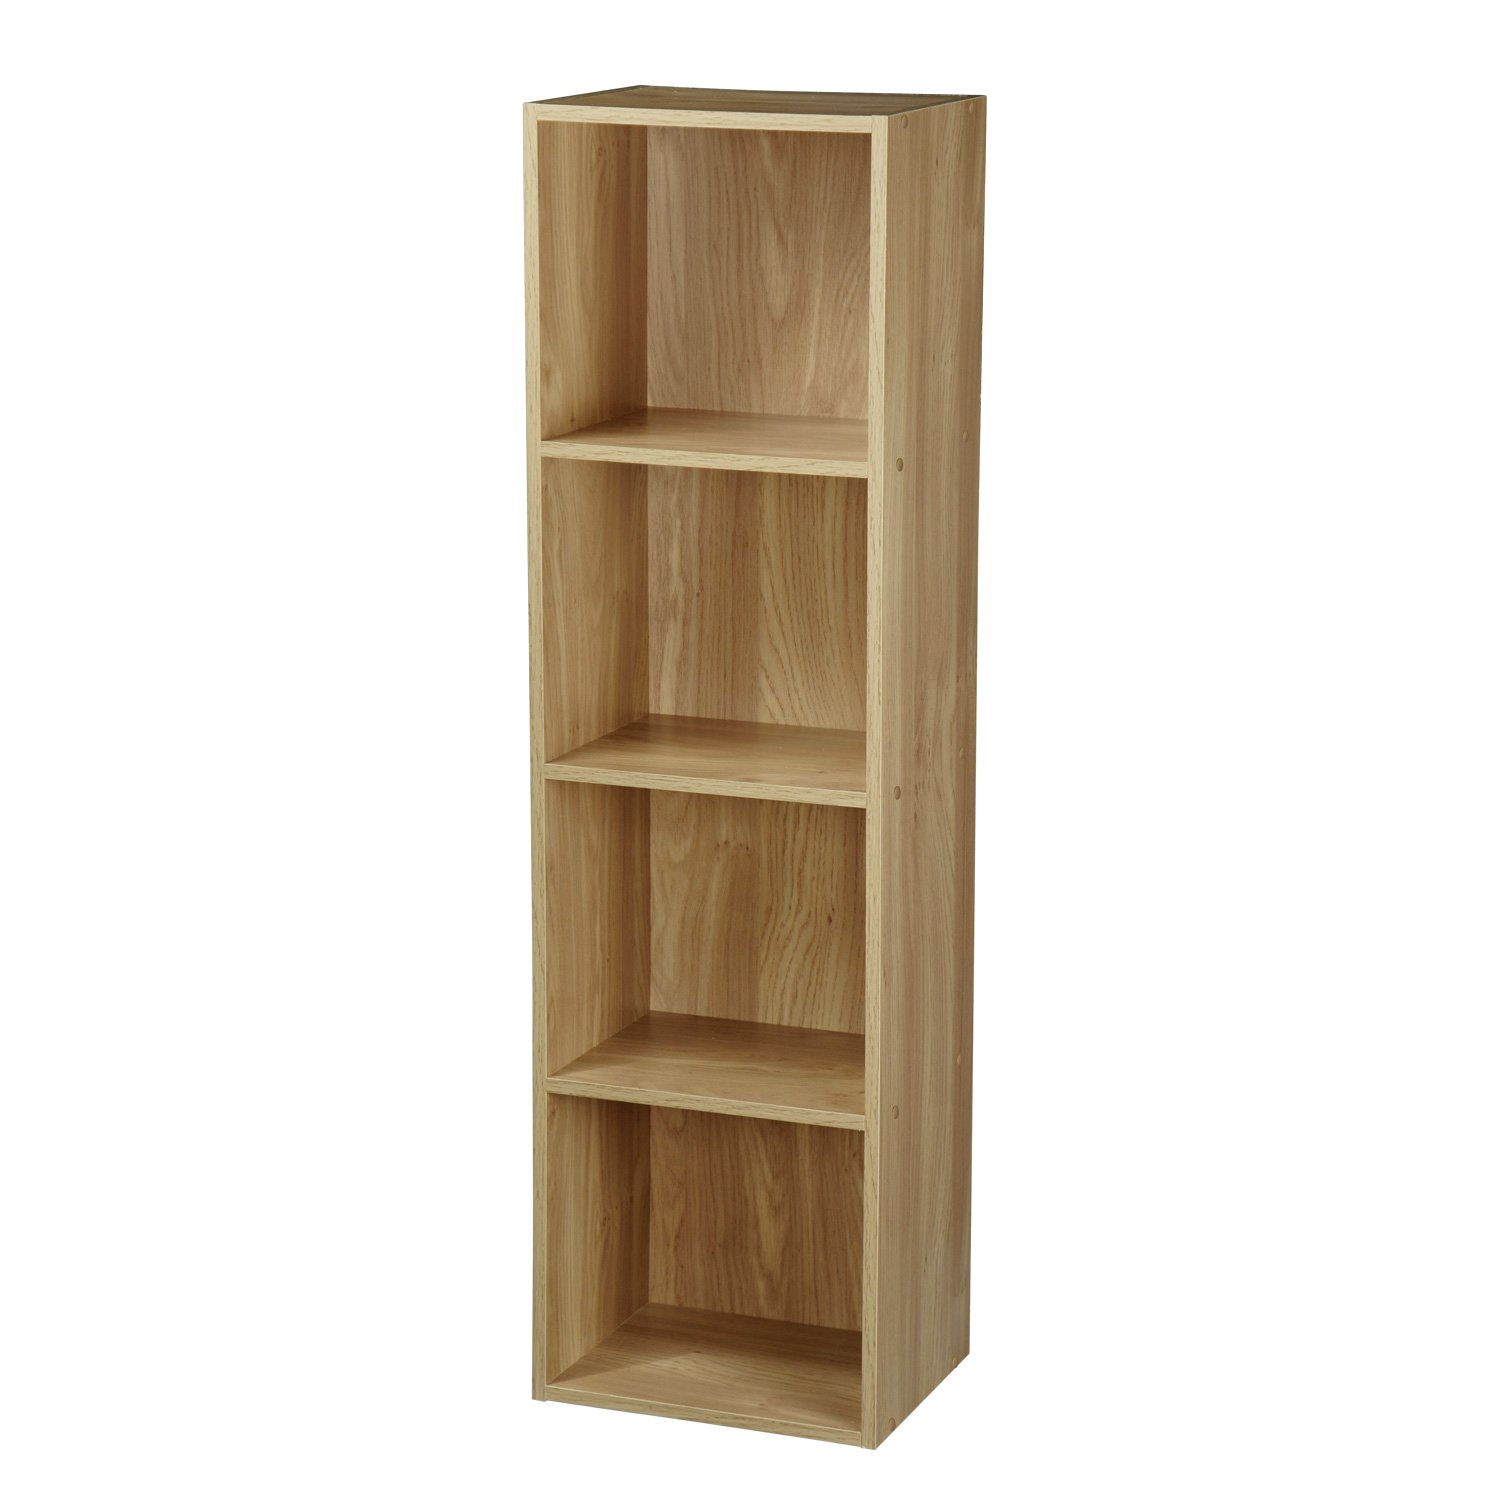 pbteen mirror bookcase products o it display storage shelf